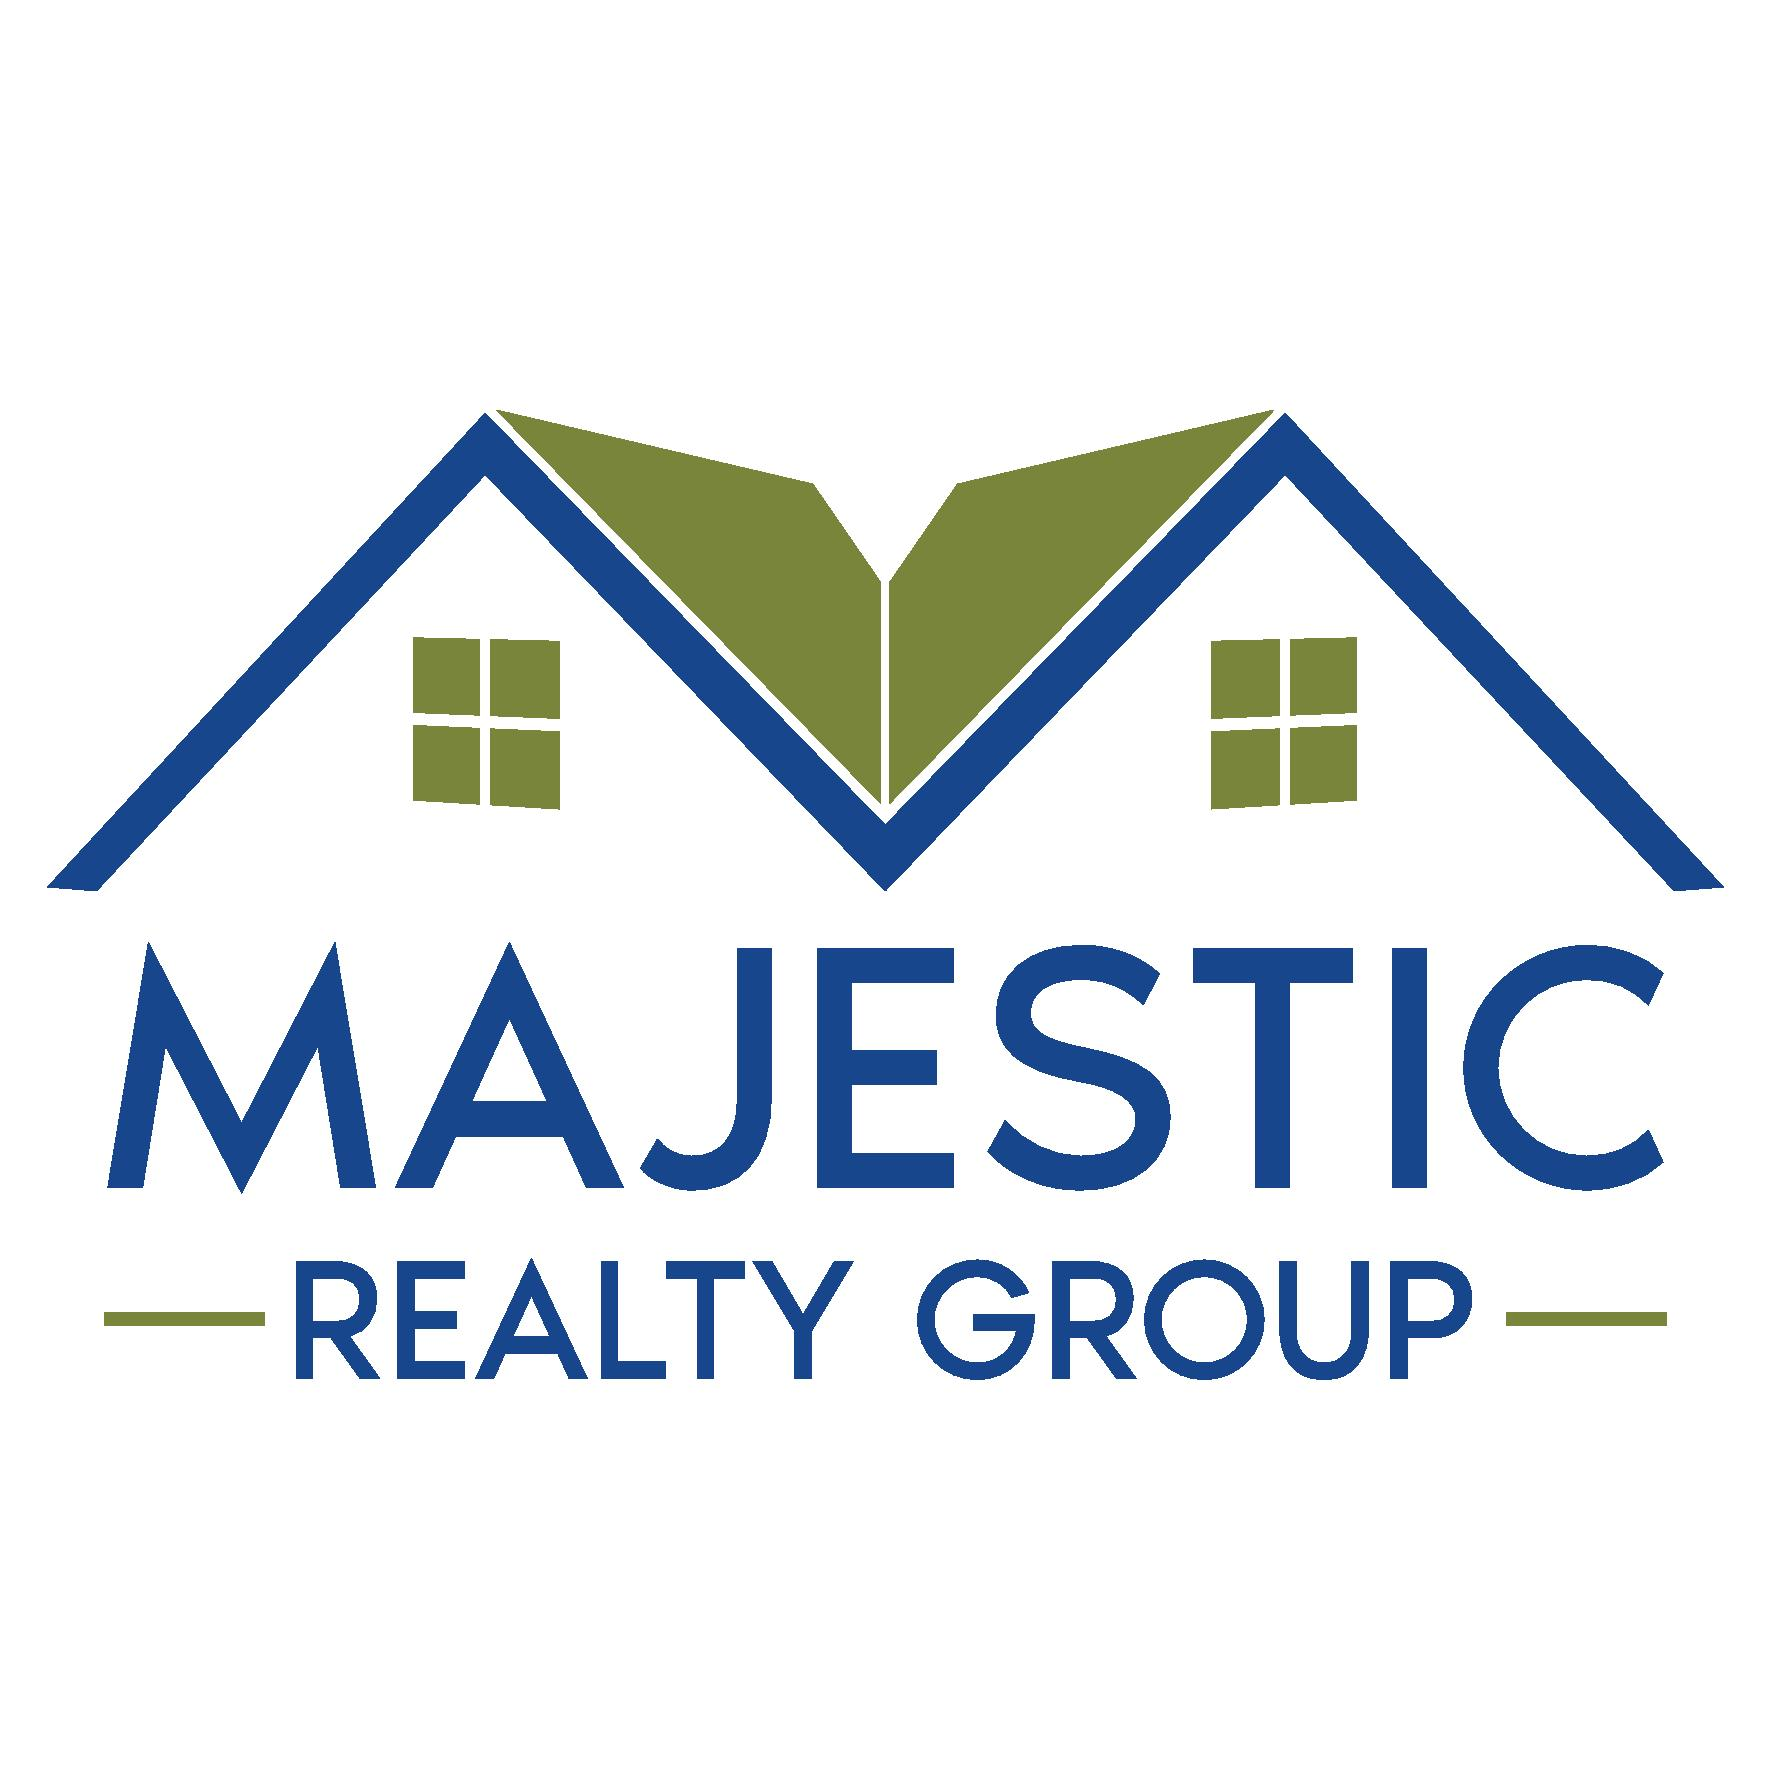 Majestic Realty Group